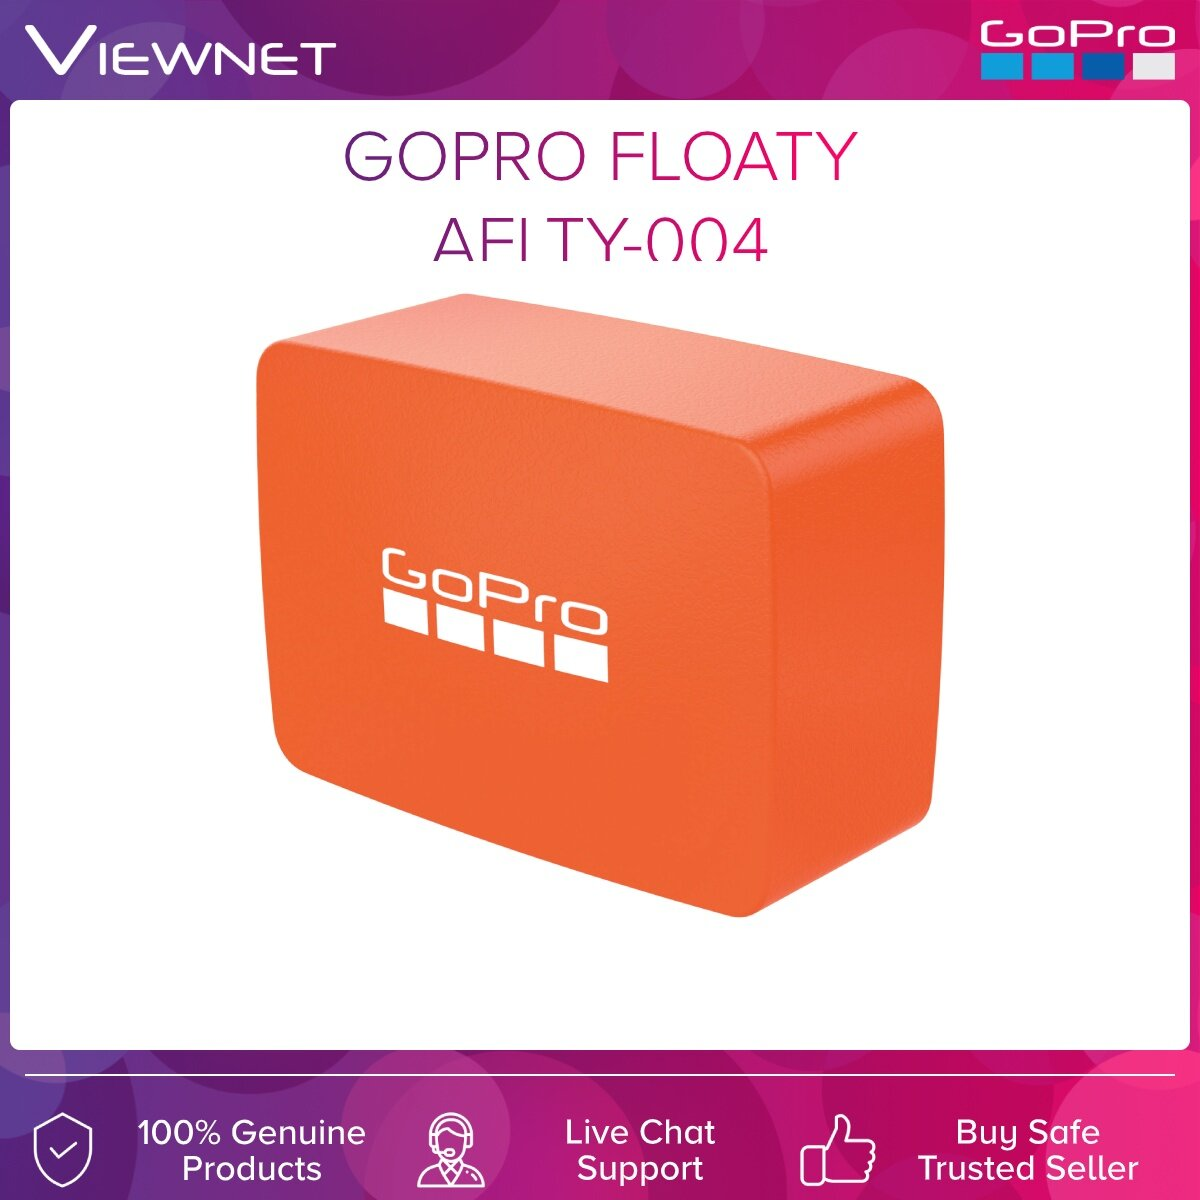 GOPRO FLOATY GOPRO ACCESSORIES (AFLTY-004)